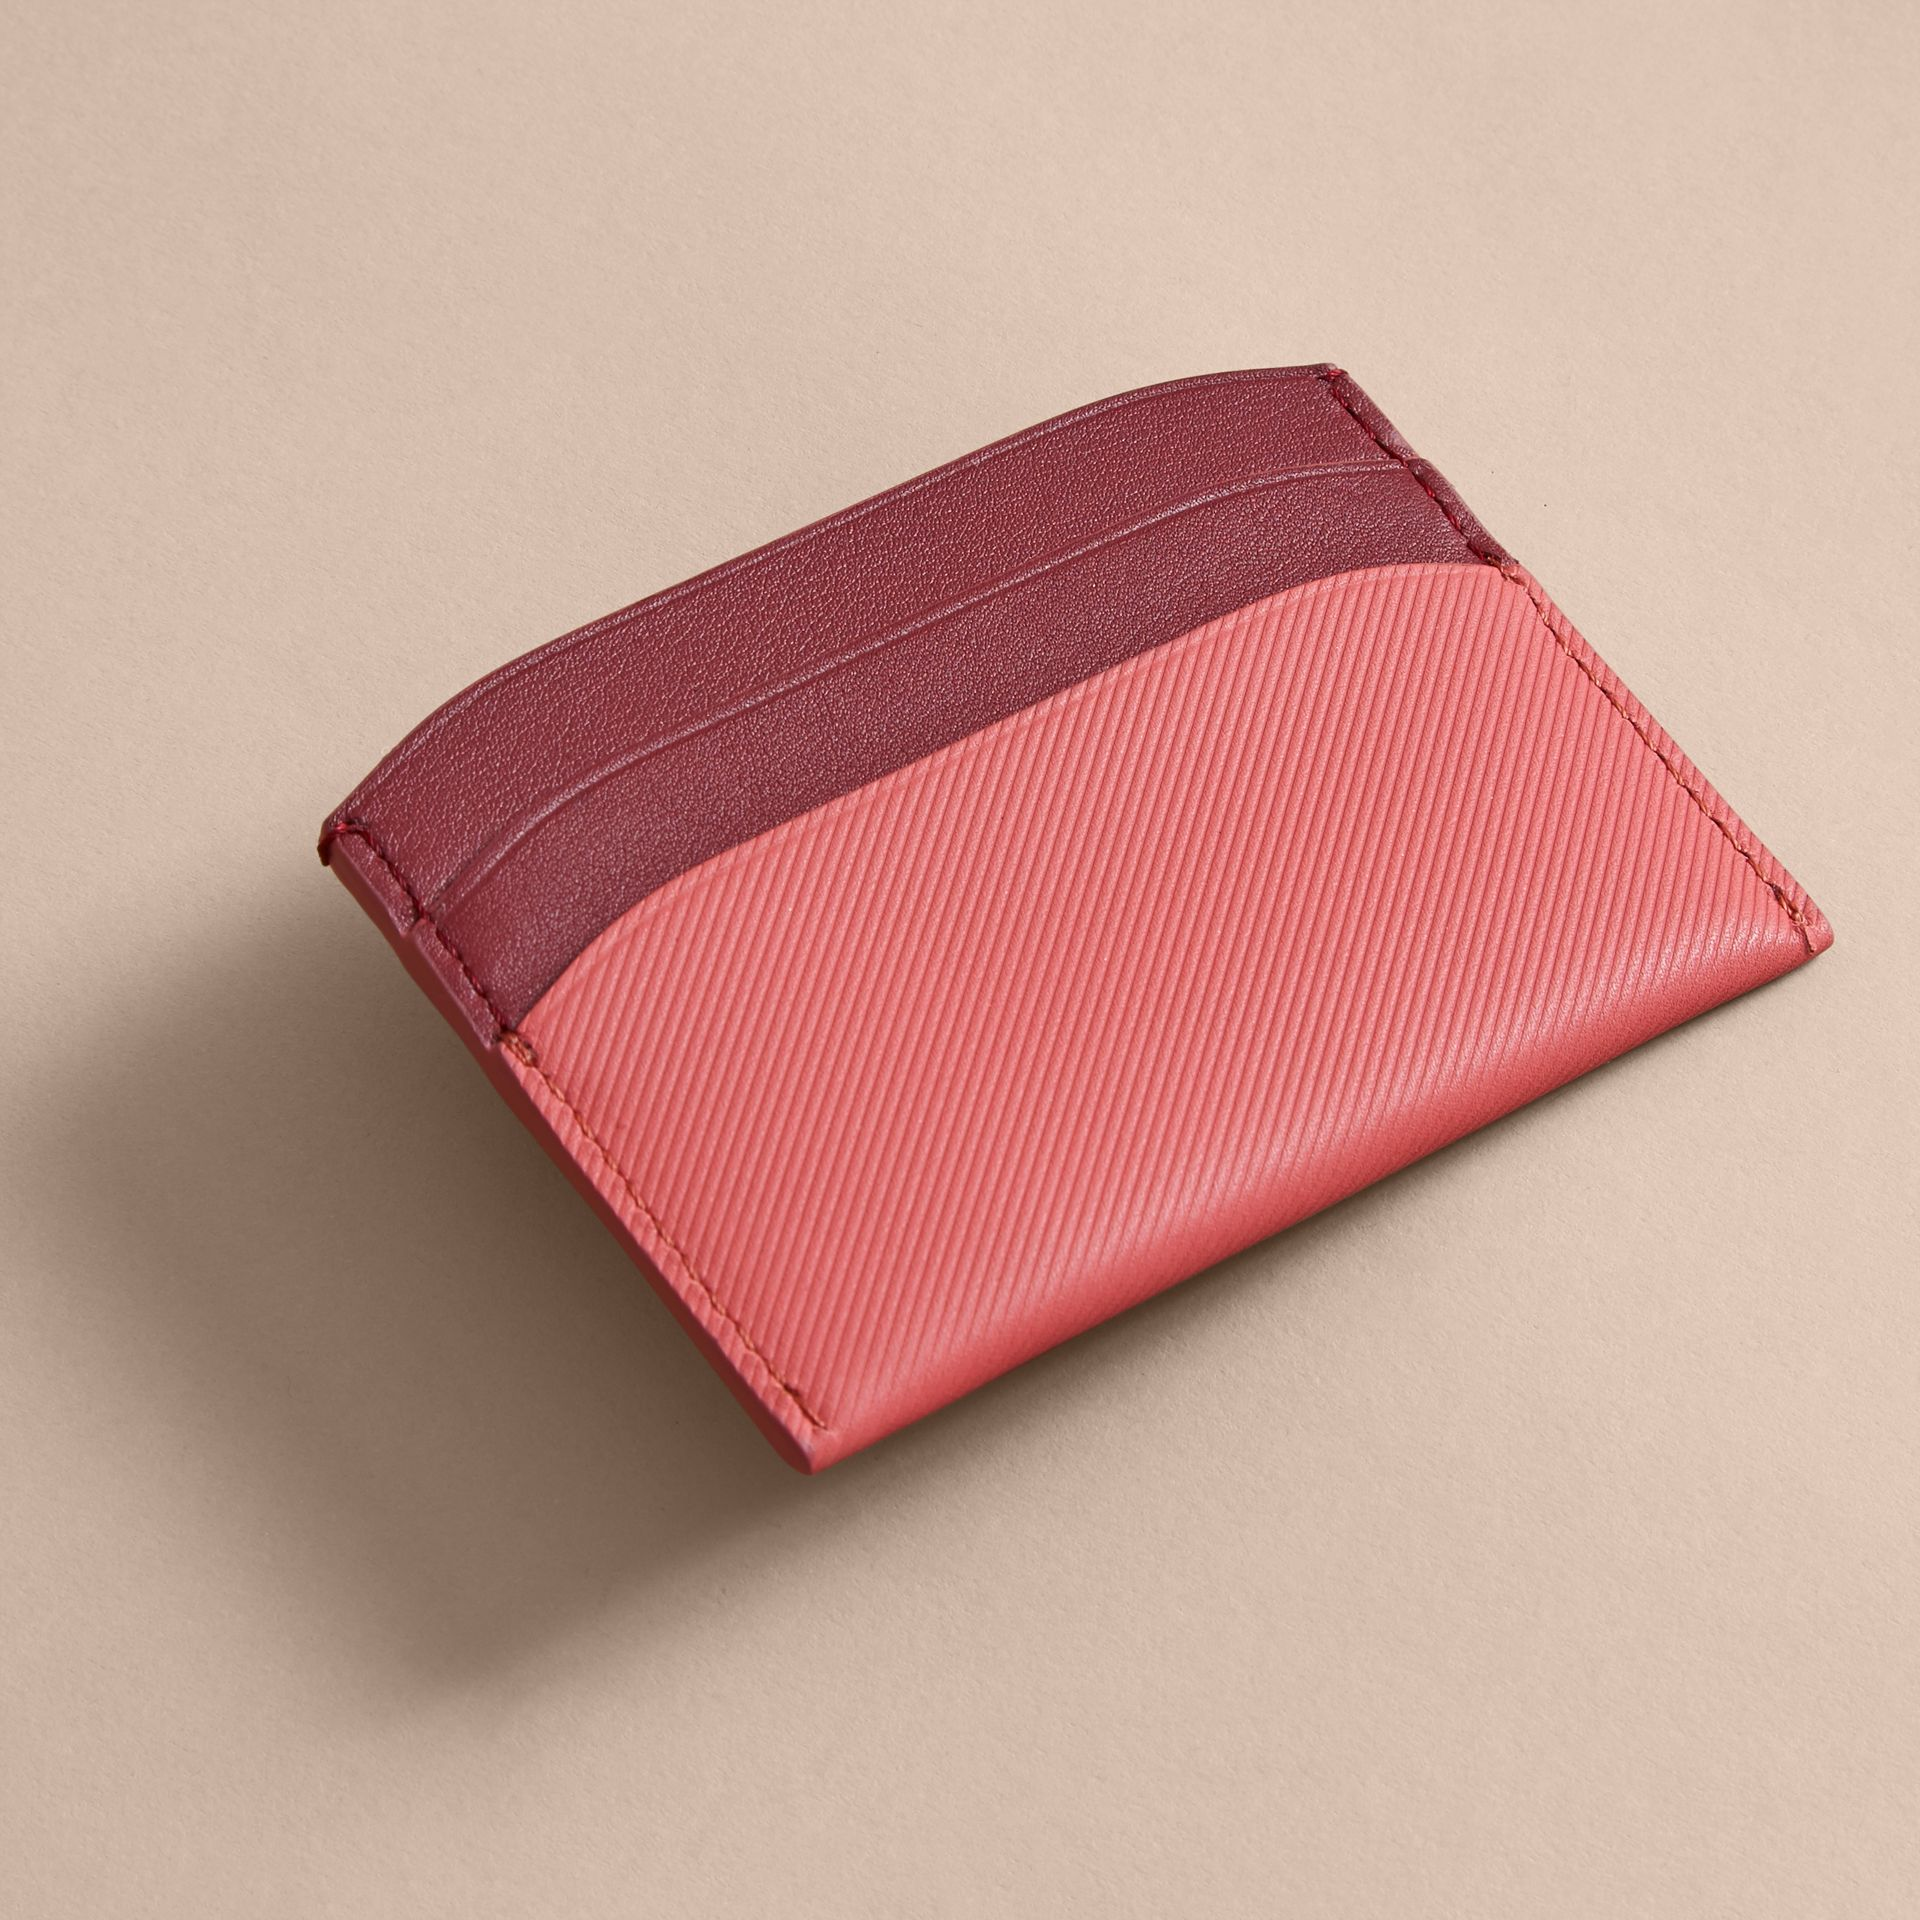 Two-tone Trench Leather Card Case in Blossom Pink/ Antique Red | Burberry - gallery image 2